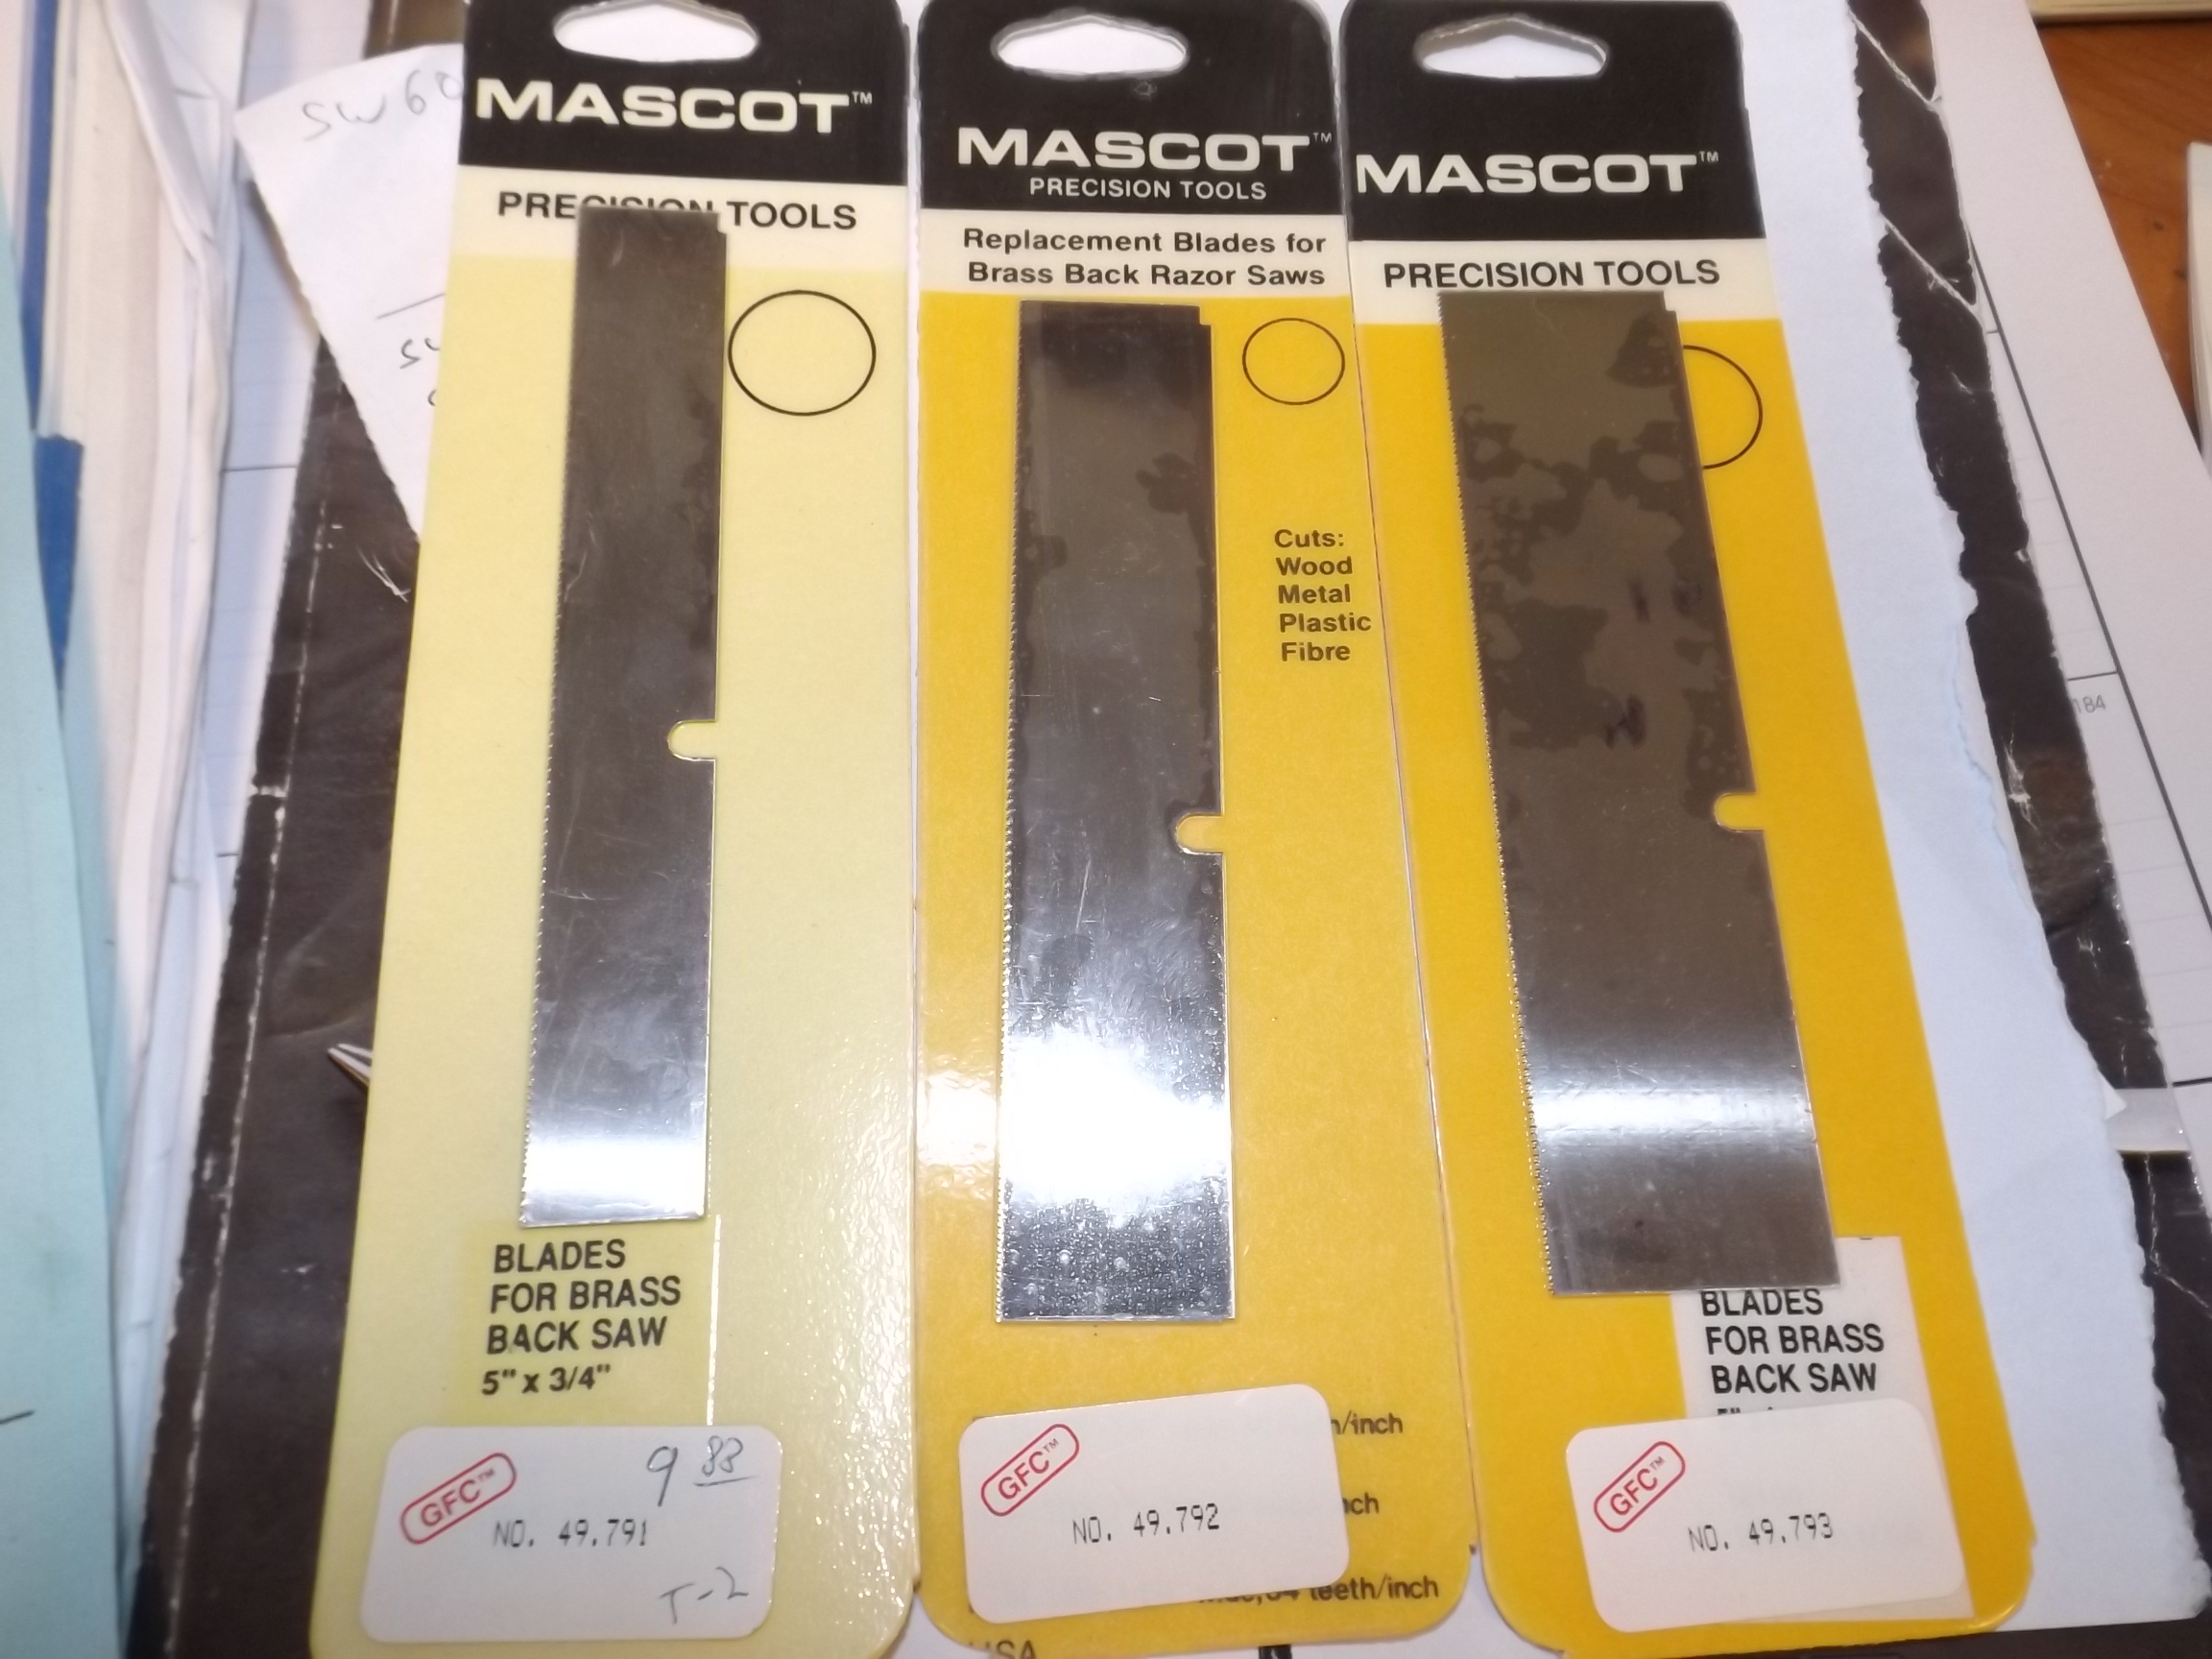 SW793 Replacement Blades for Brass Back Razor Saws-Mascot Brand by Grobet #49.793 Discontinued